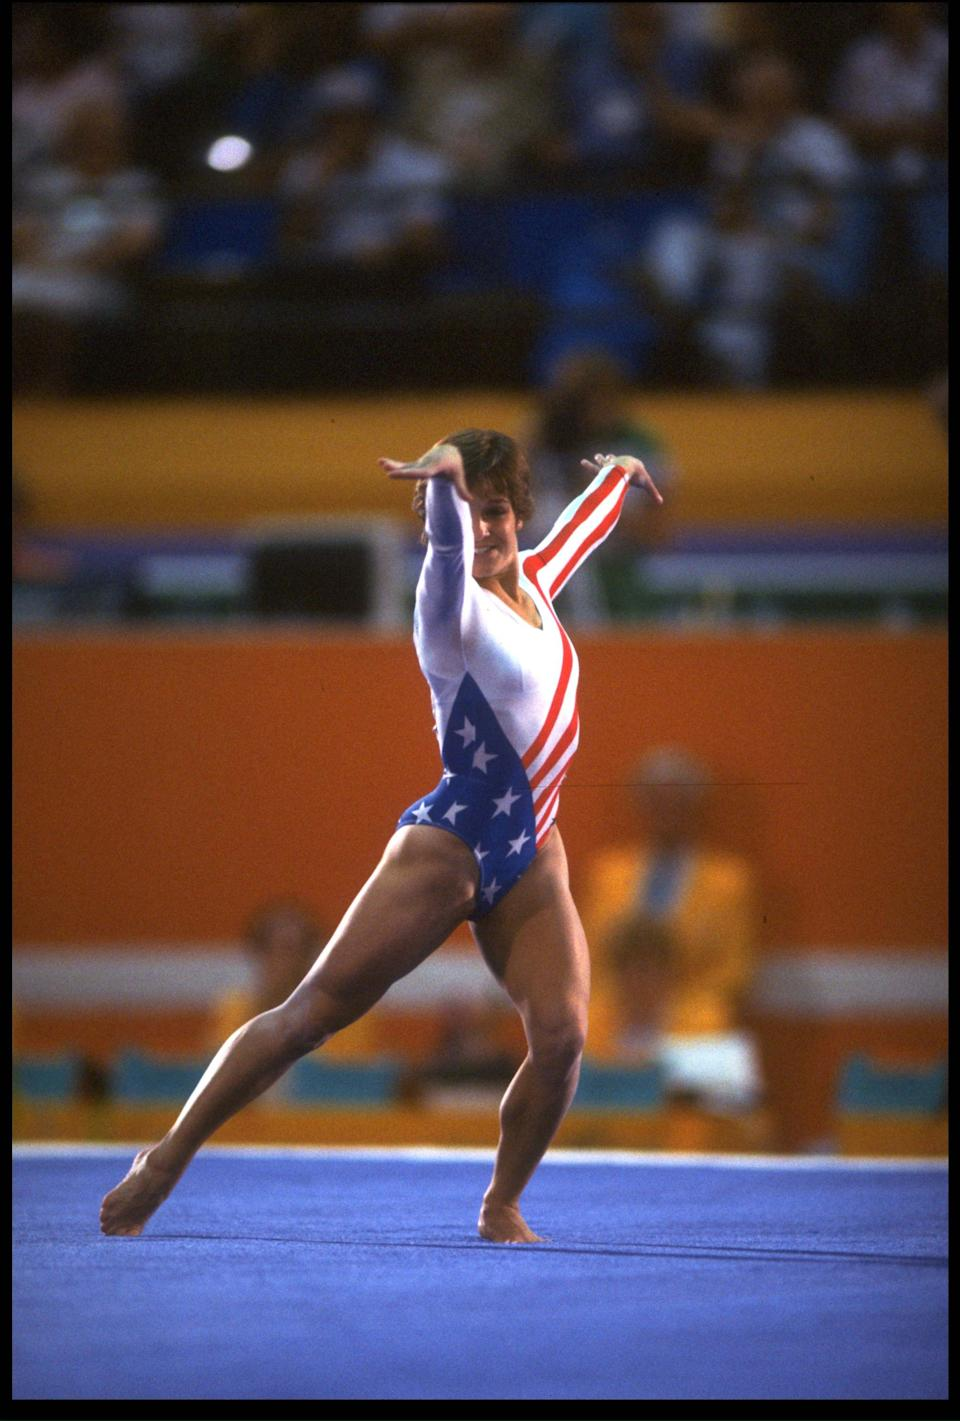 No other name would be fit for America's first sweetheart other than Mary Lou Retton. In 1984, Retton was faced with an Olympics without the Soviet Union, which boycotted the Los Angeles venue, yet the U.S. gymnast was up against the dominating Eastern European athletes. Retton earned a perfect 10 in the vault event and was the first American to earn gold in gymnastics.